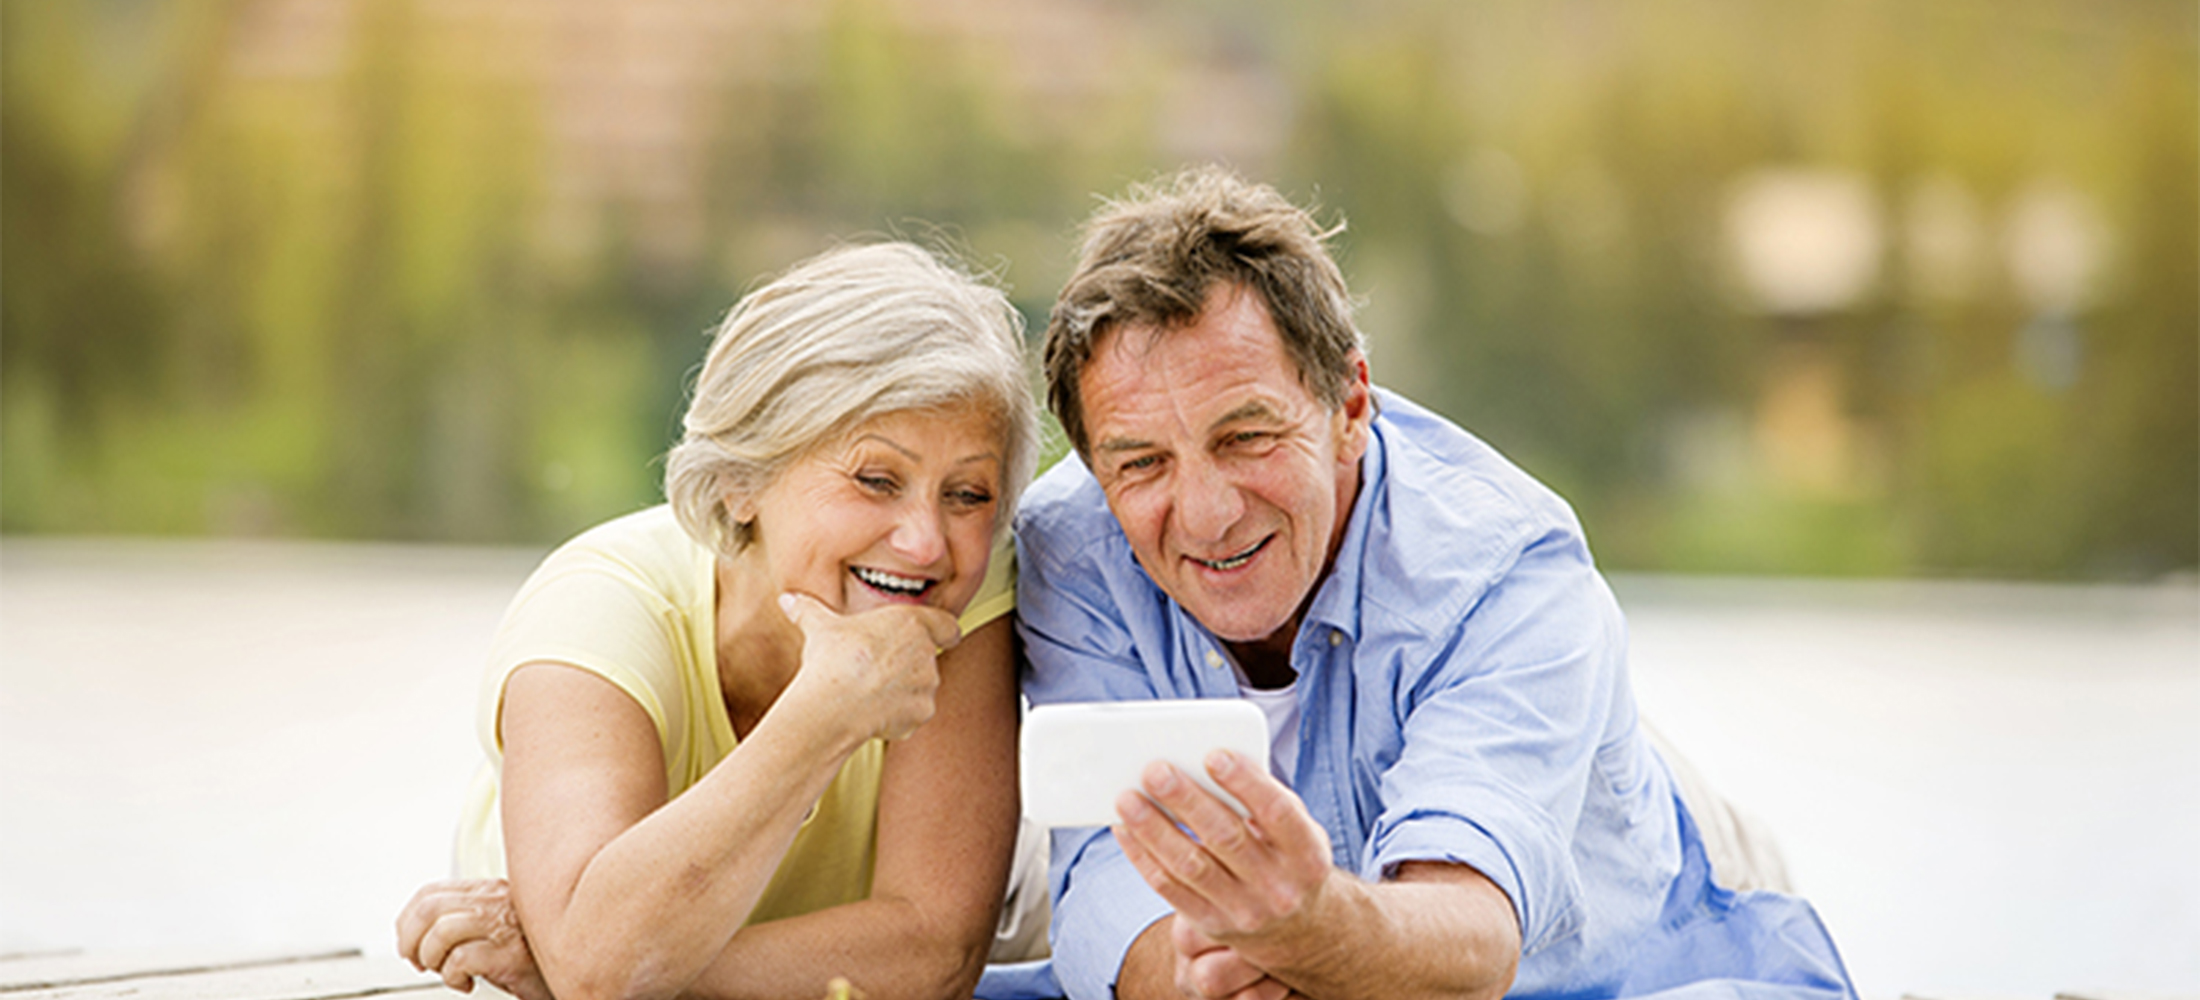 how will an aging population change real estate investment